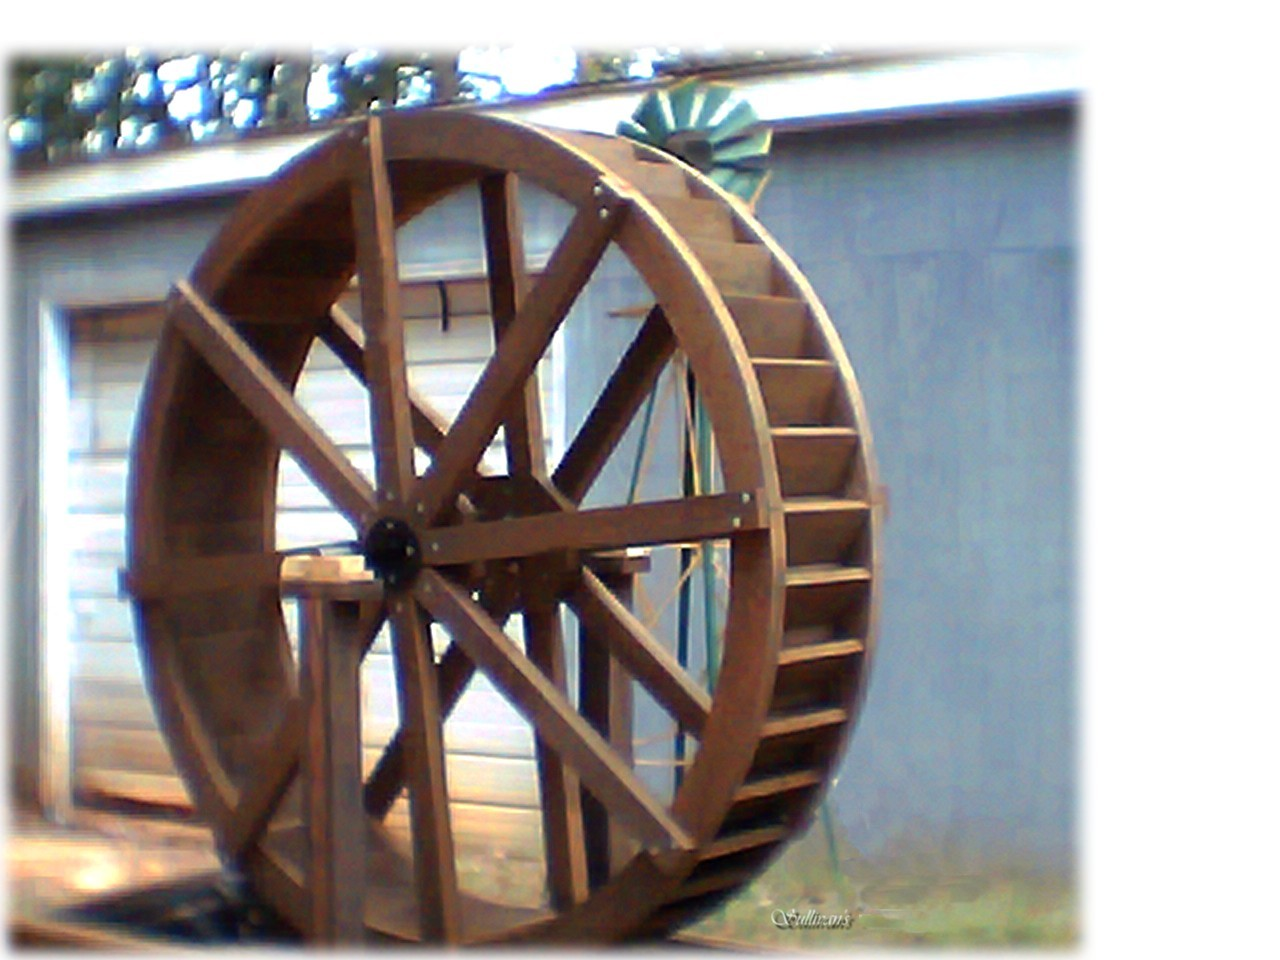 6 Foot Water Wheel By Sullivan Water Wheels